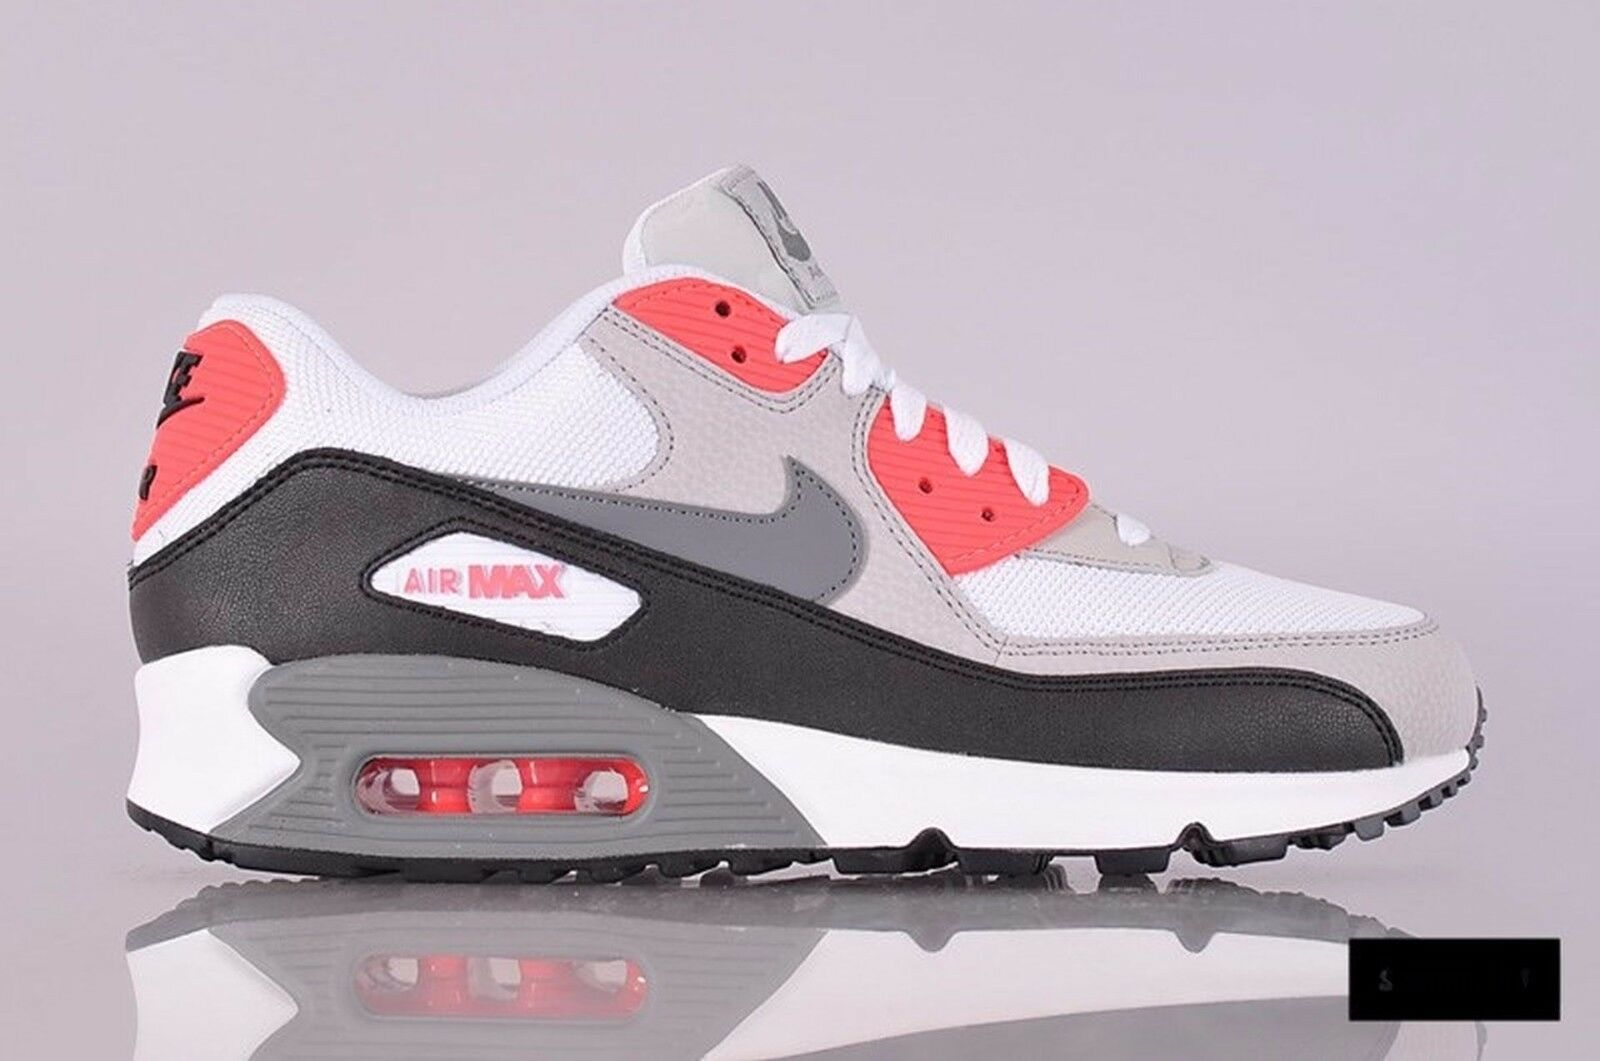 Nike Air Max 90 Essential Mens Sz 10.5 537384-108 White/Cool Grey/Neutral Grey Comfortable and good-looking